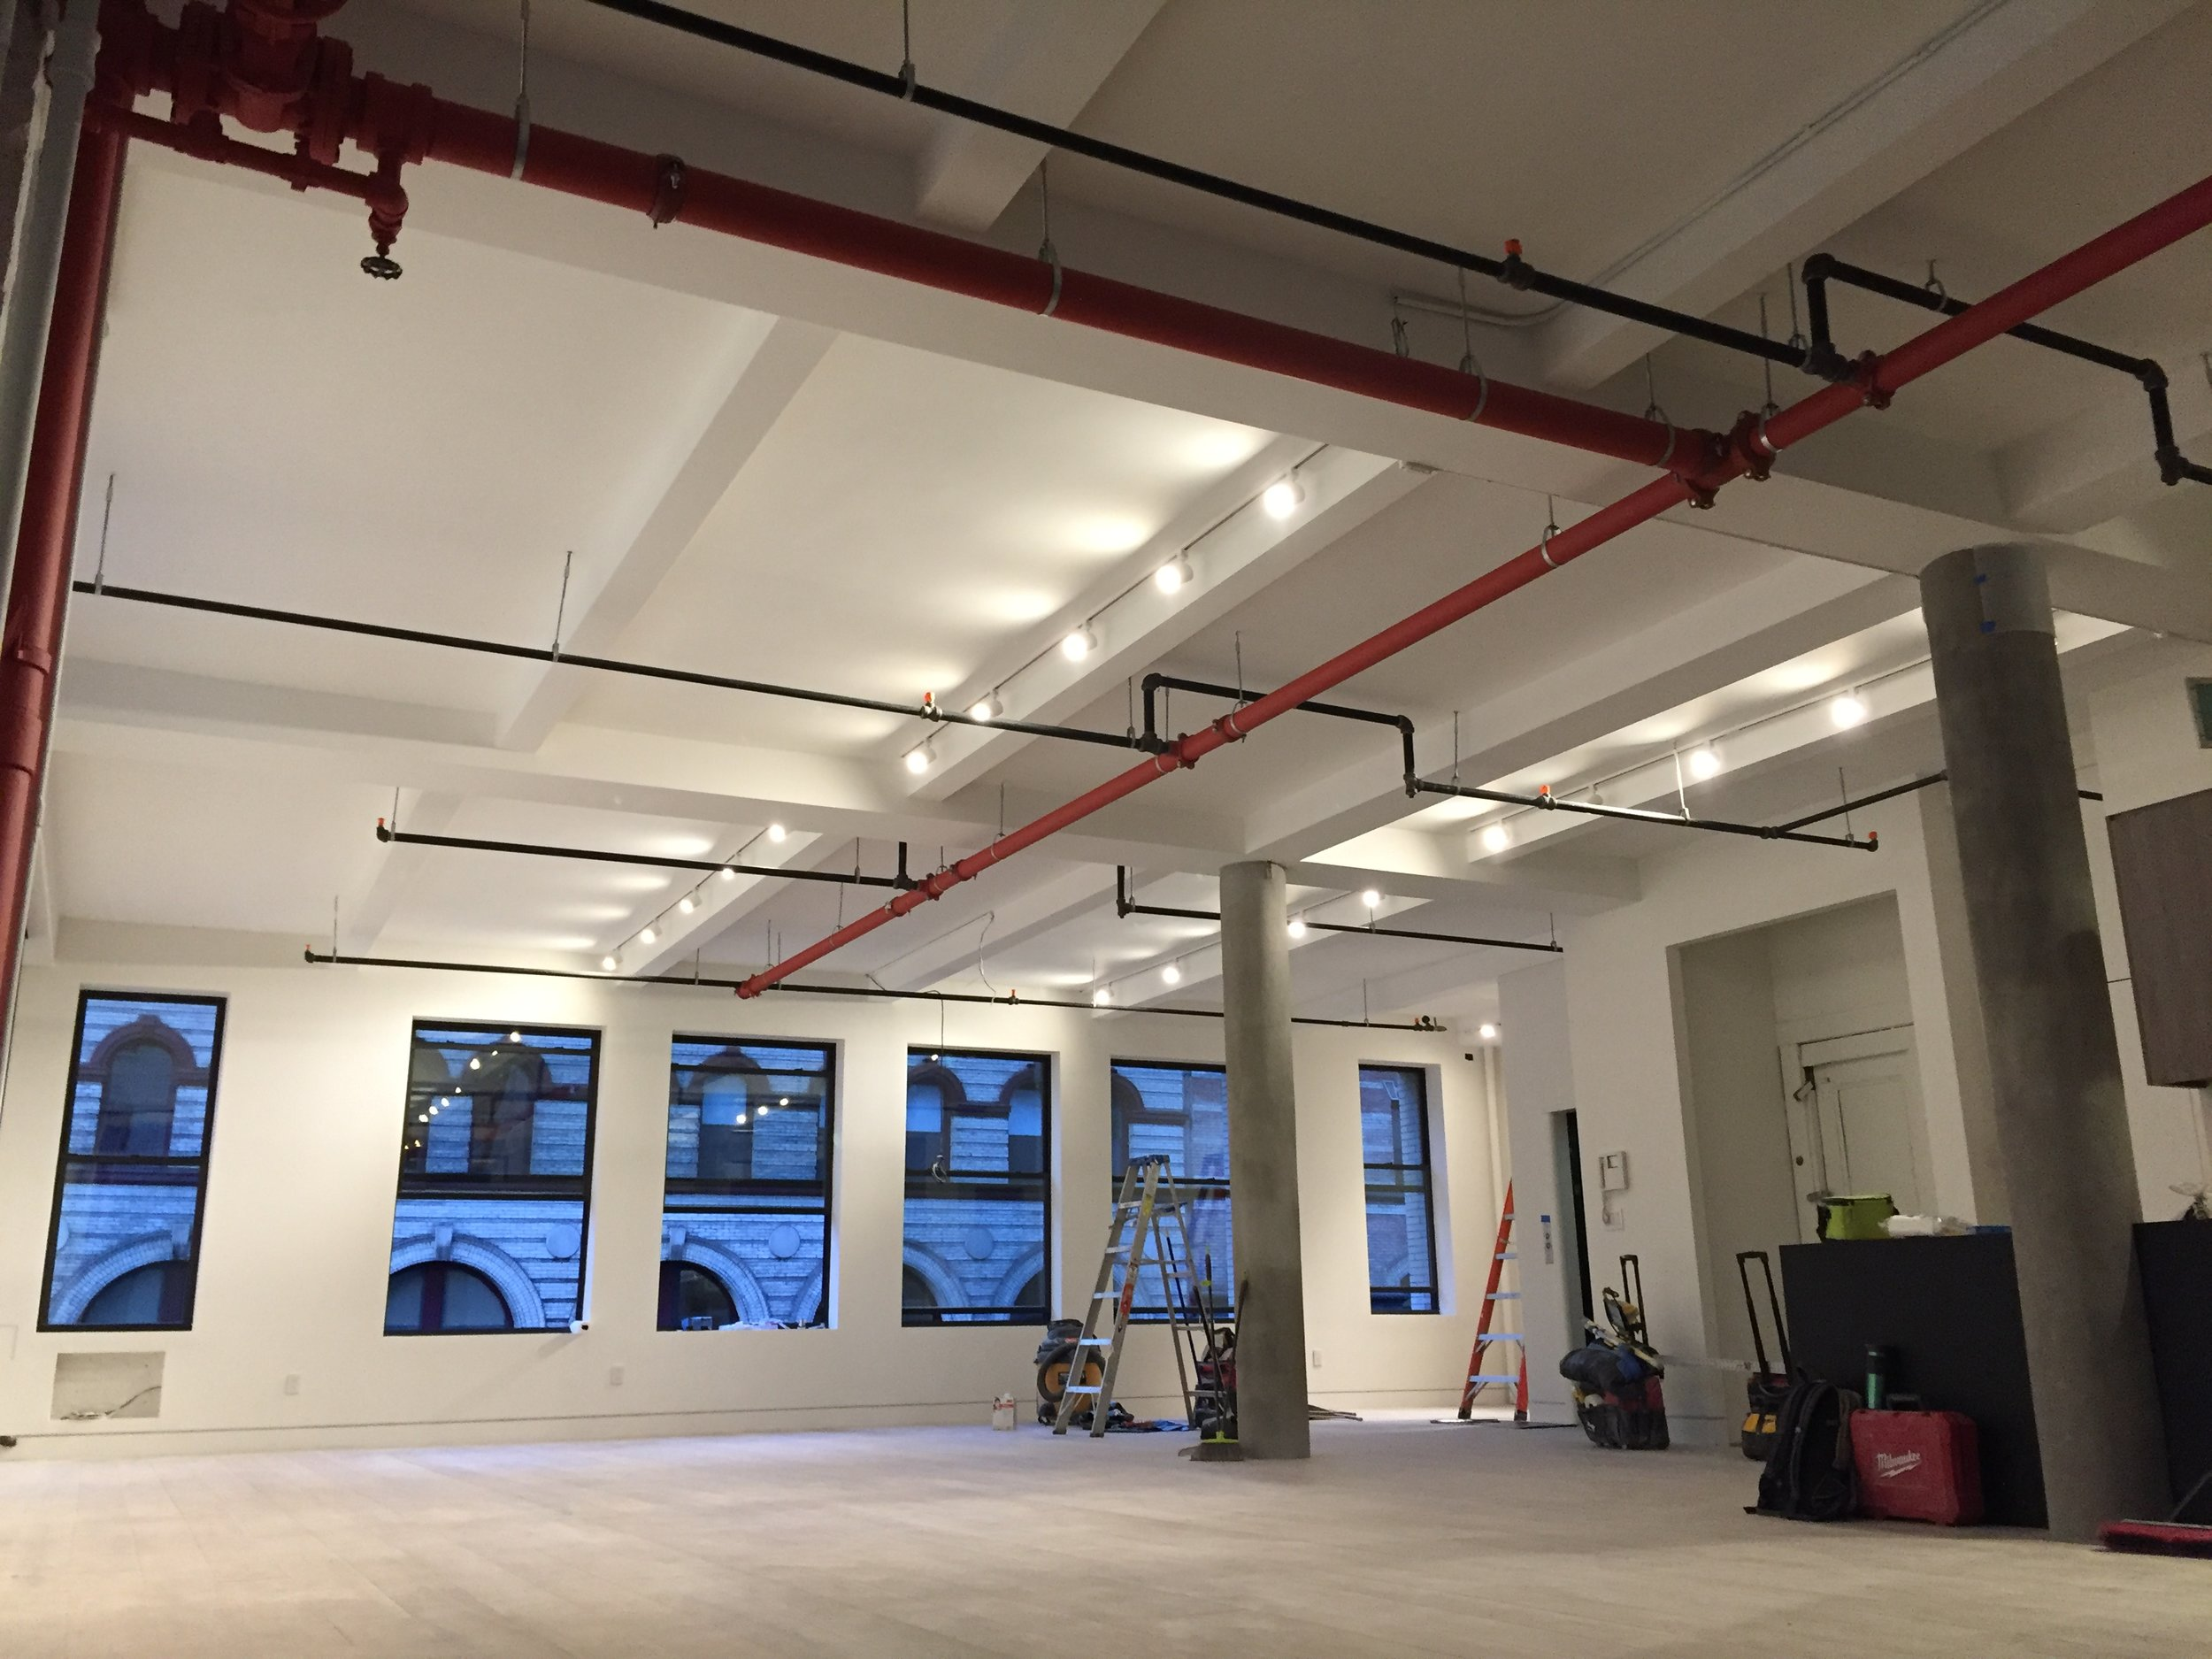 138 West 17th St / NYC  - Full gut renovation and fitout of high end loft